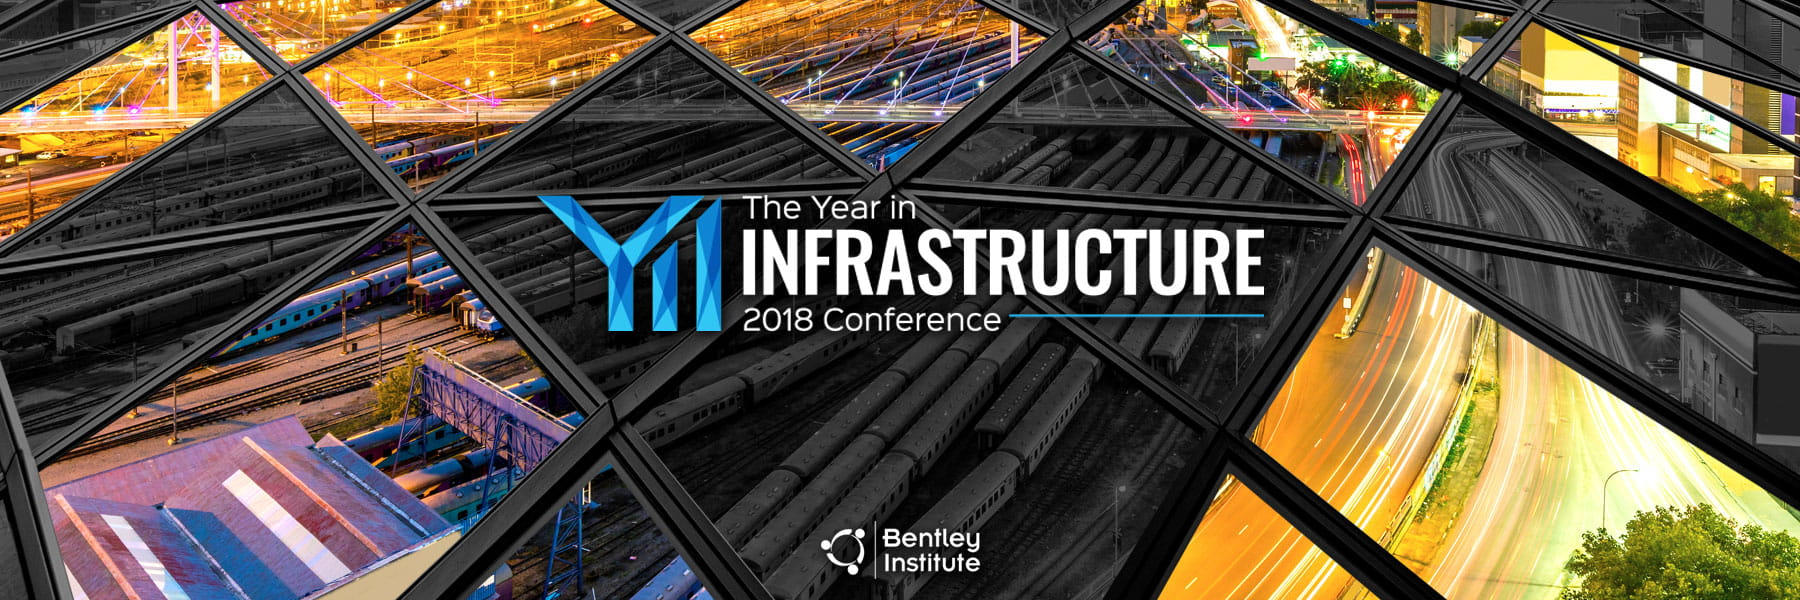 The Year in Infrastructure 2018 Conference